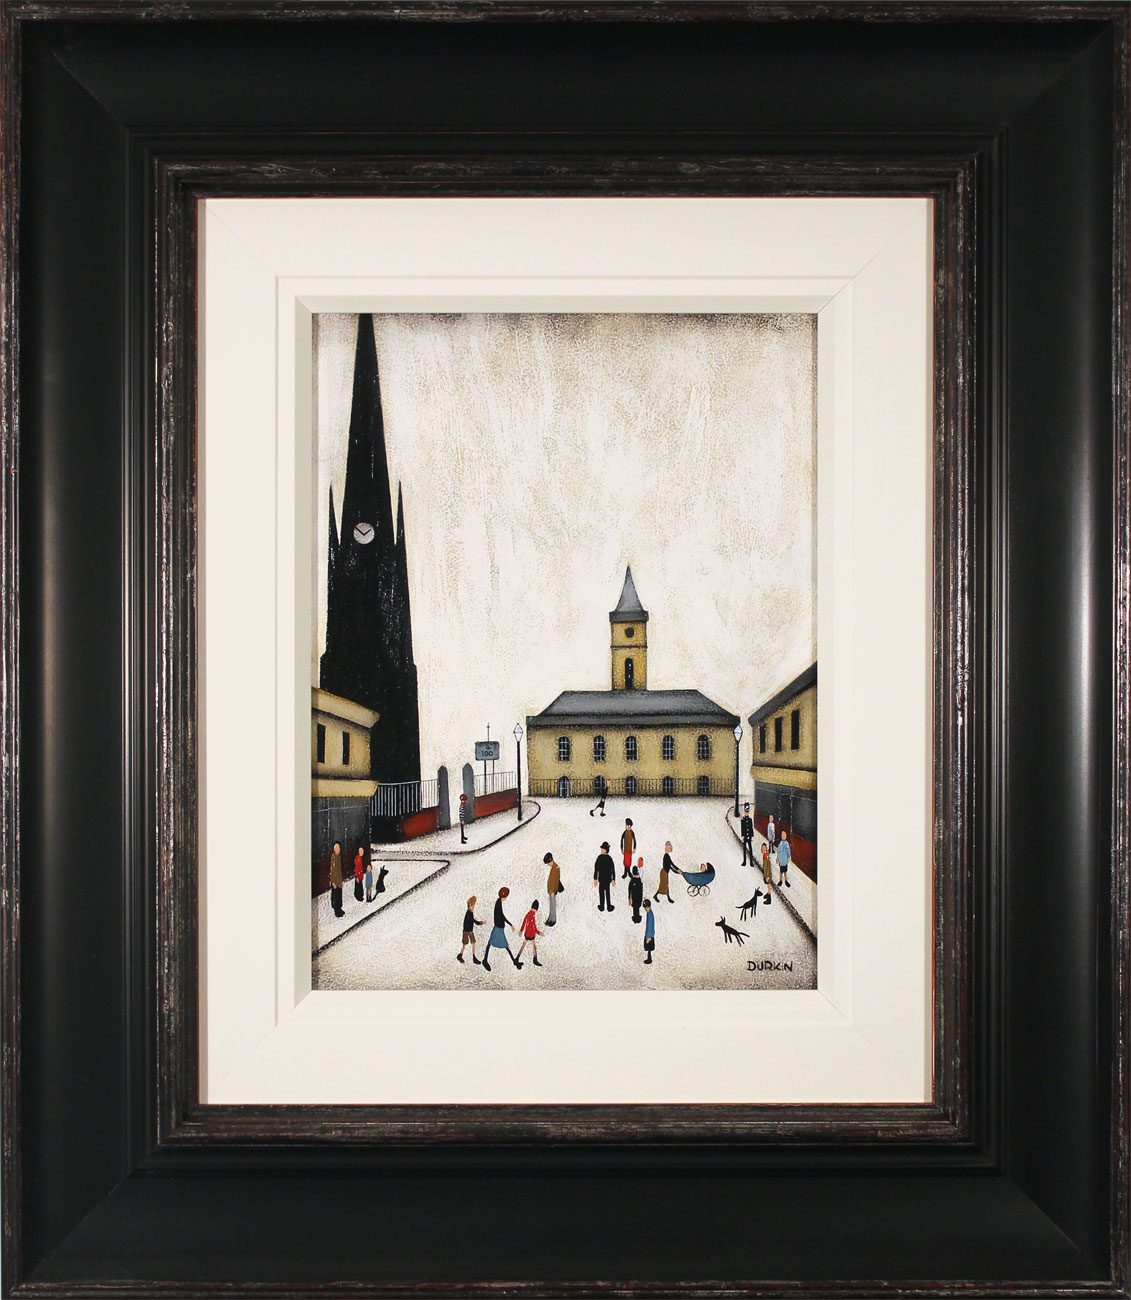 Sean Durkin, Original oil painting on panel, Return to St Hilda's, click to enlarge